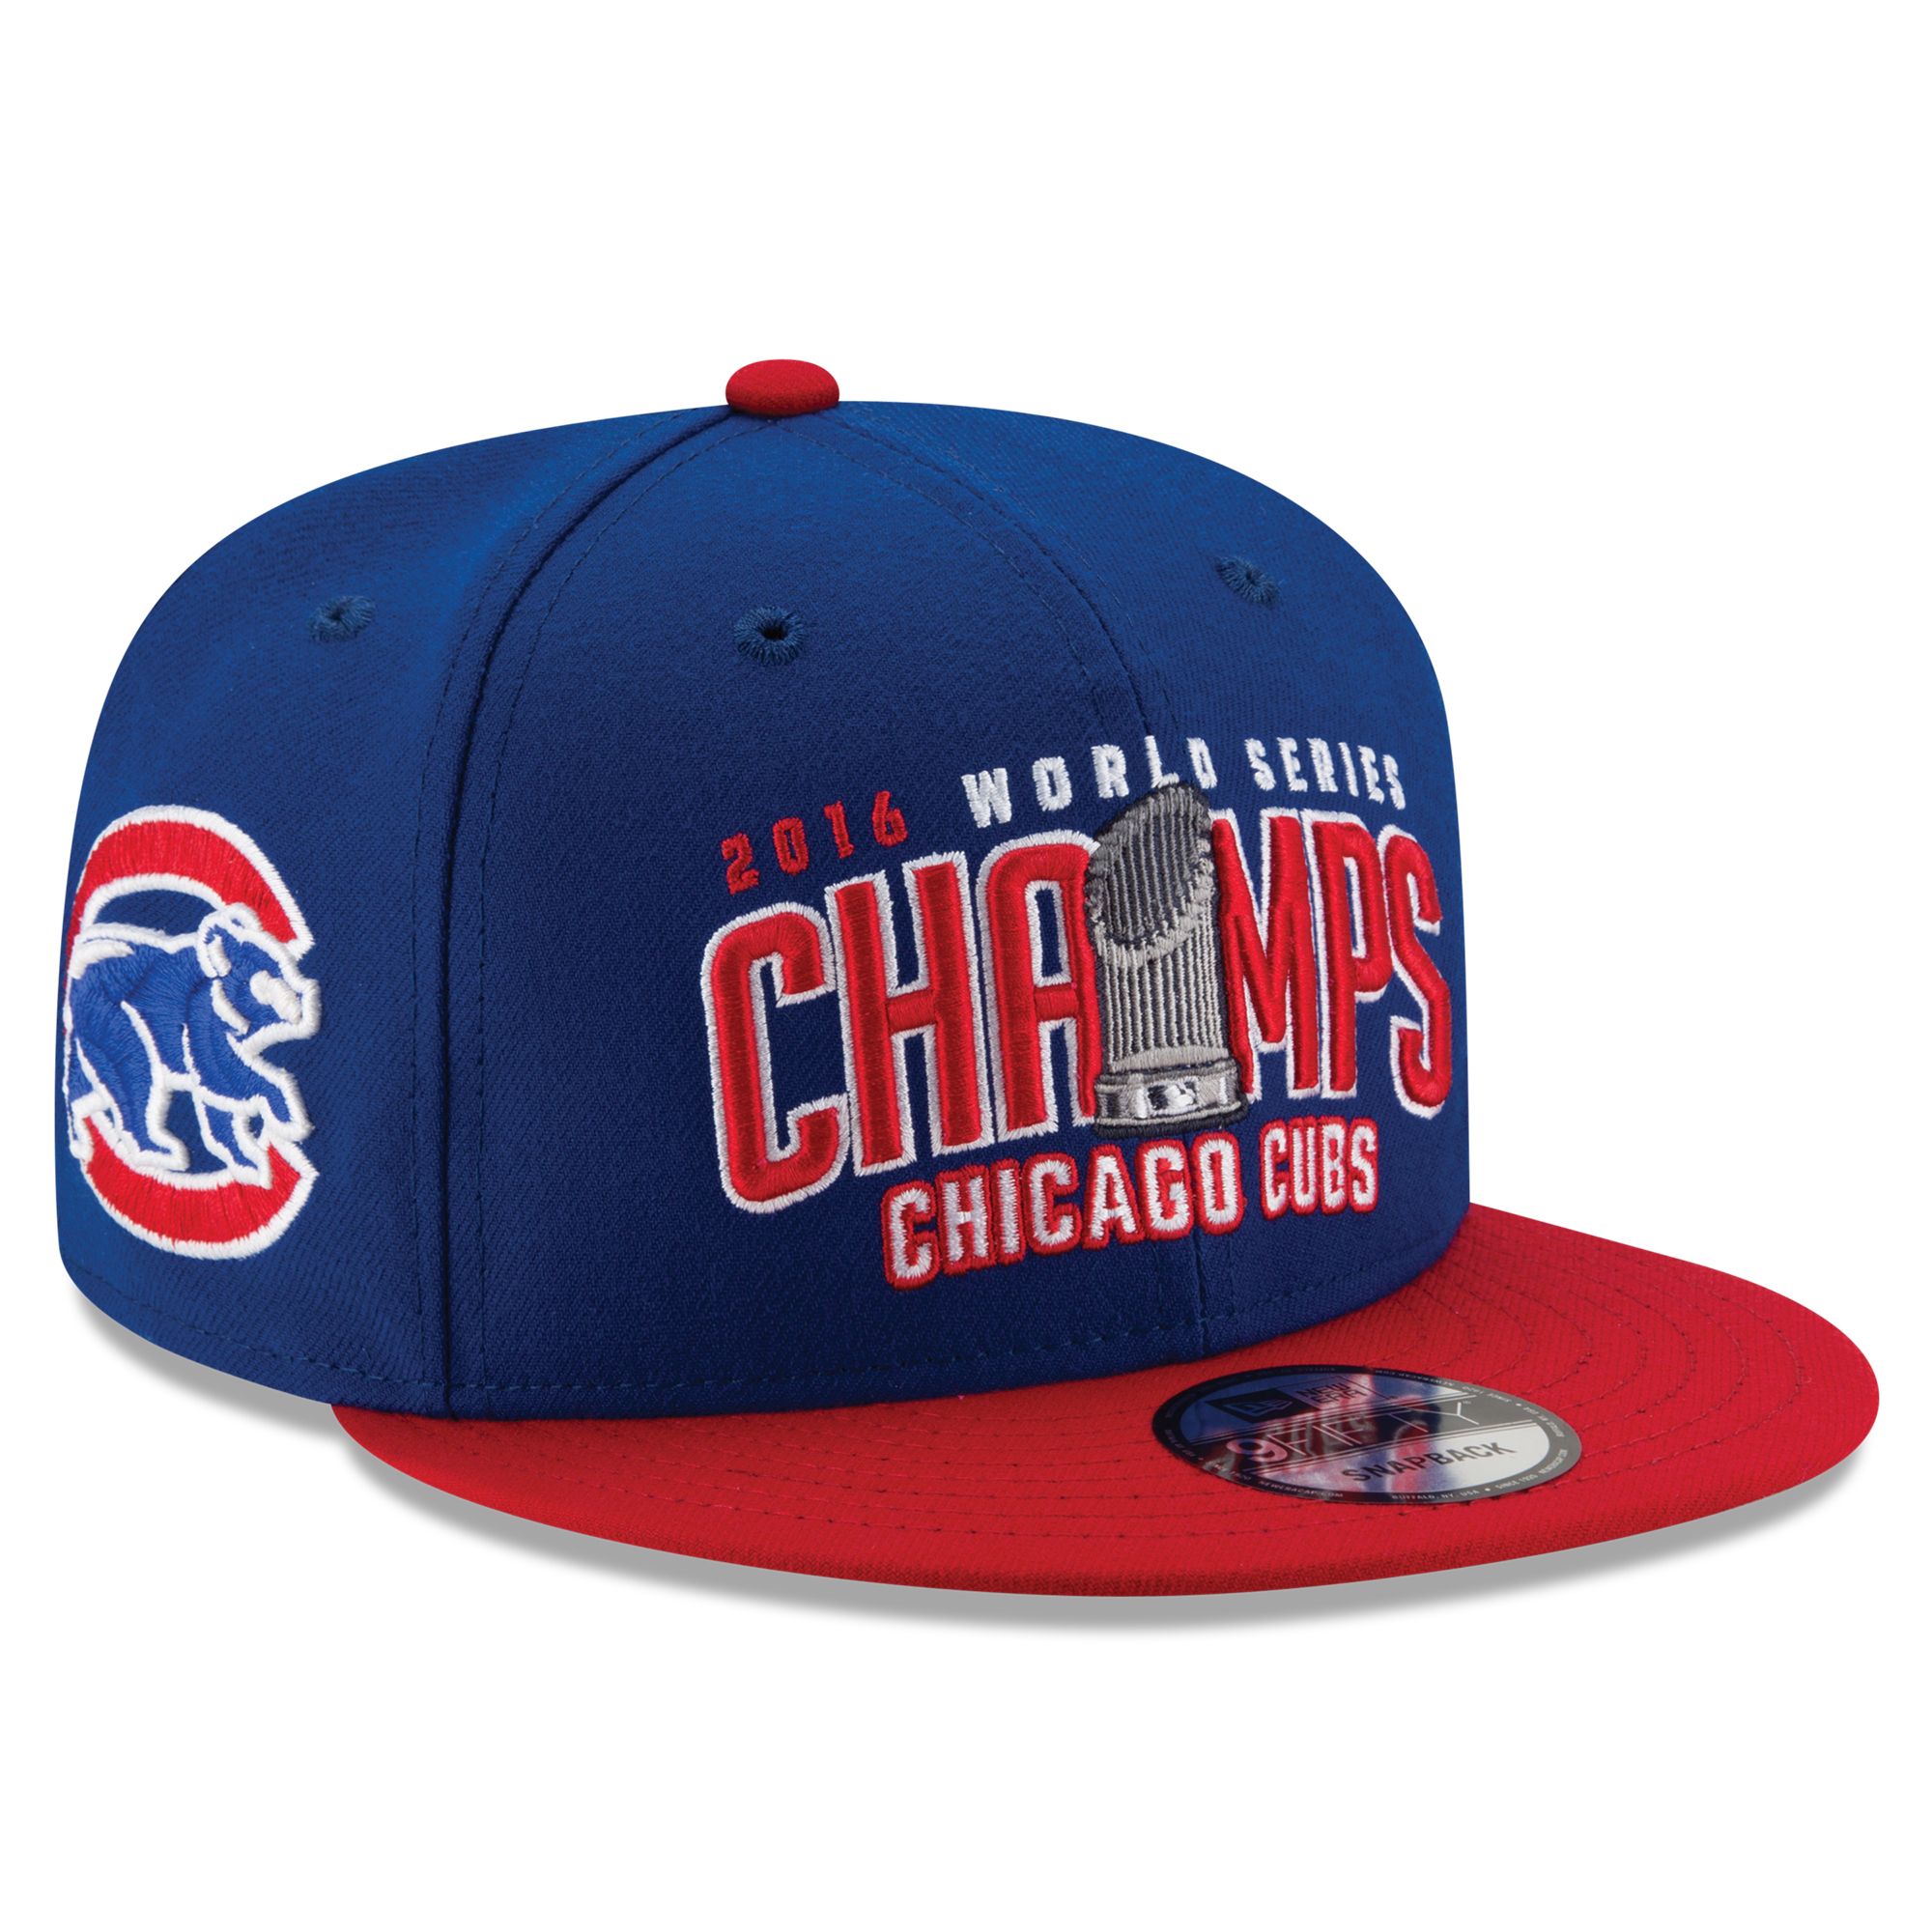 Chicago Cubs New Era 2016 World Series Champions Two-Tone 9FIFTY Snapback Adjustable Hat - Royal/Red - OSFA